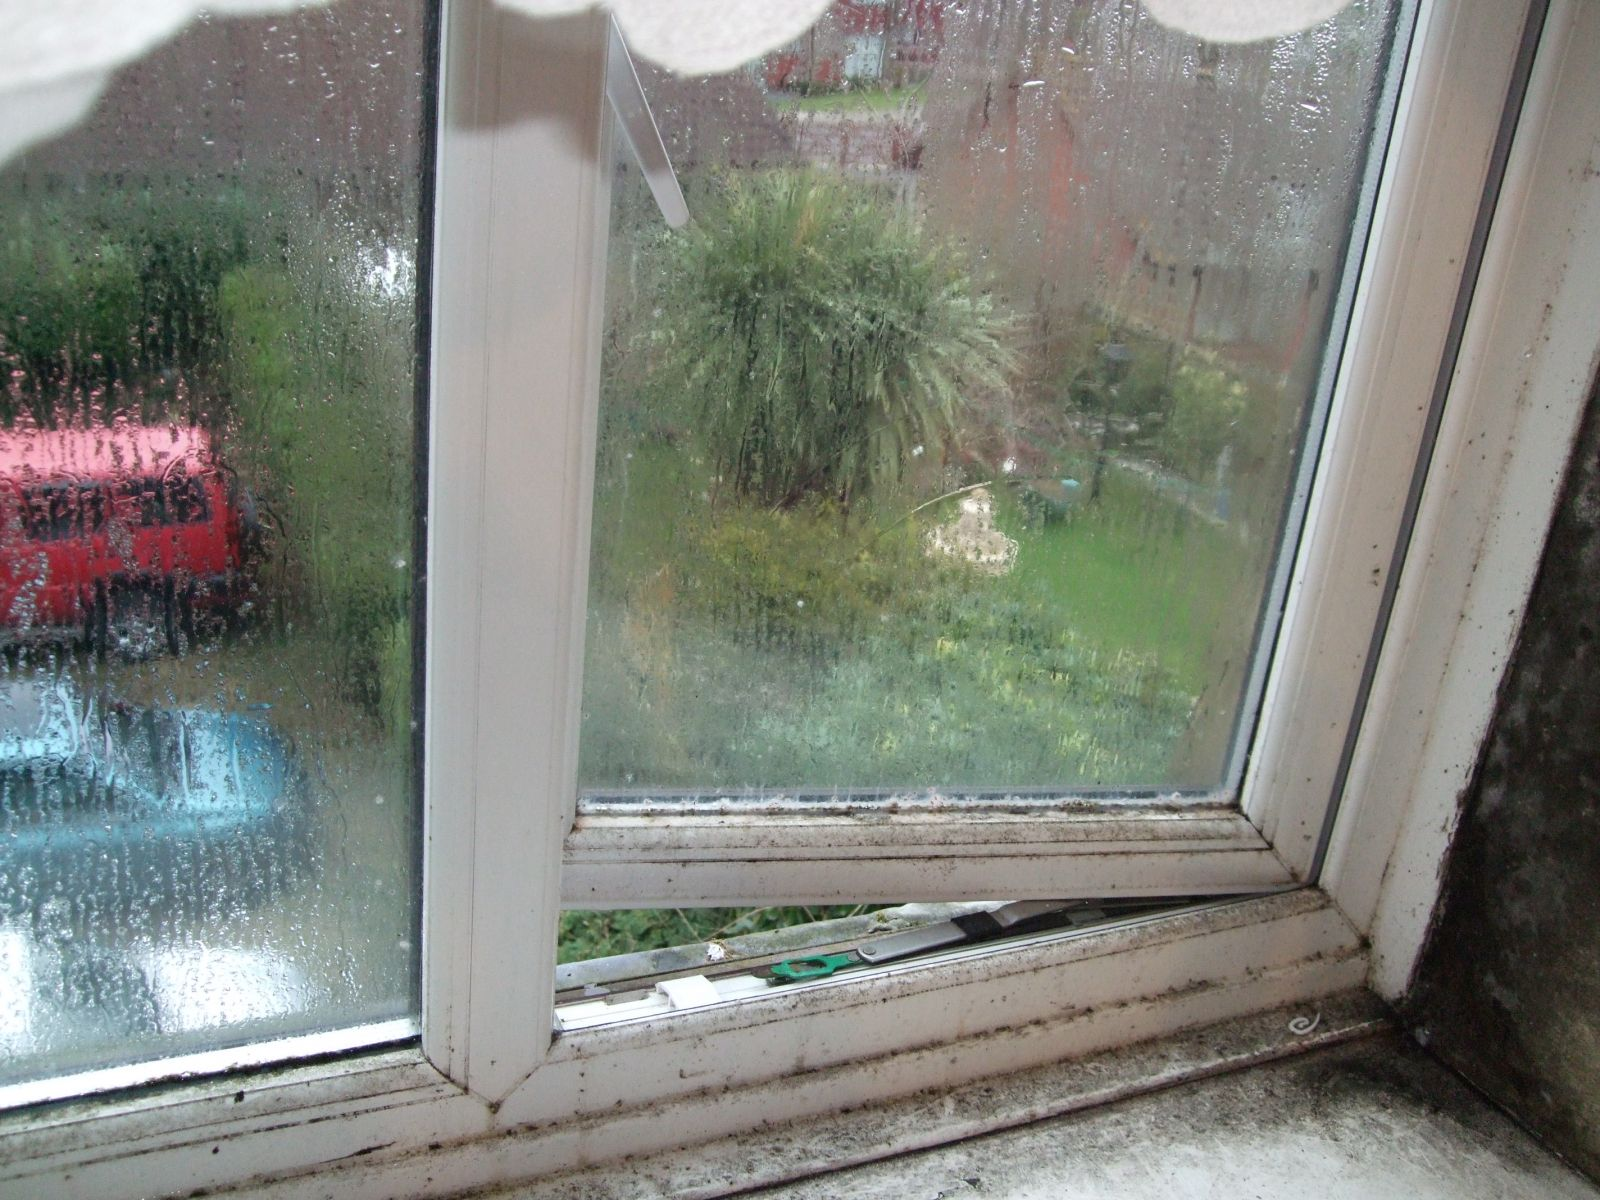 contact Barnsley Damp Proofing for condensation or mould issues in your property